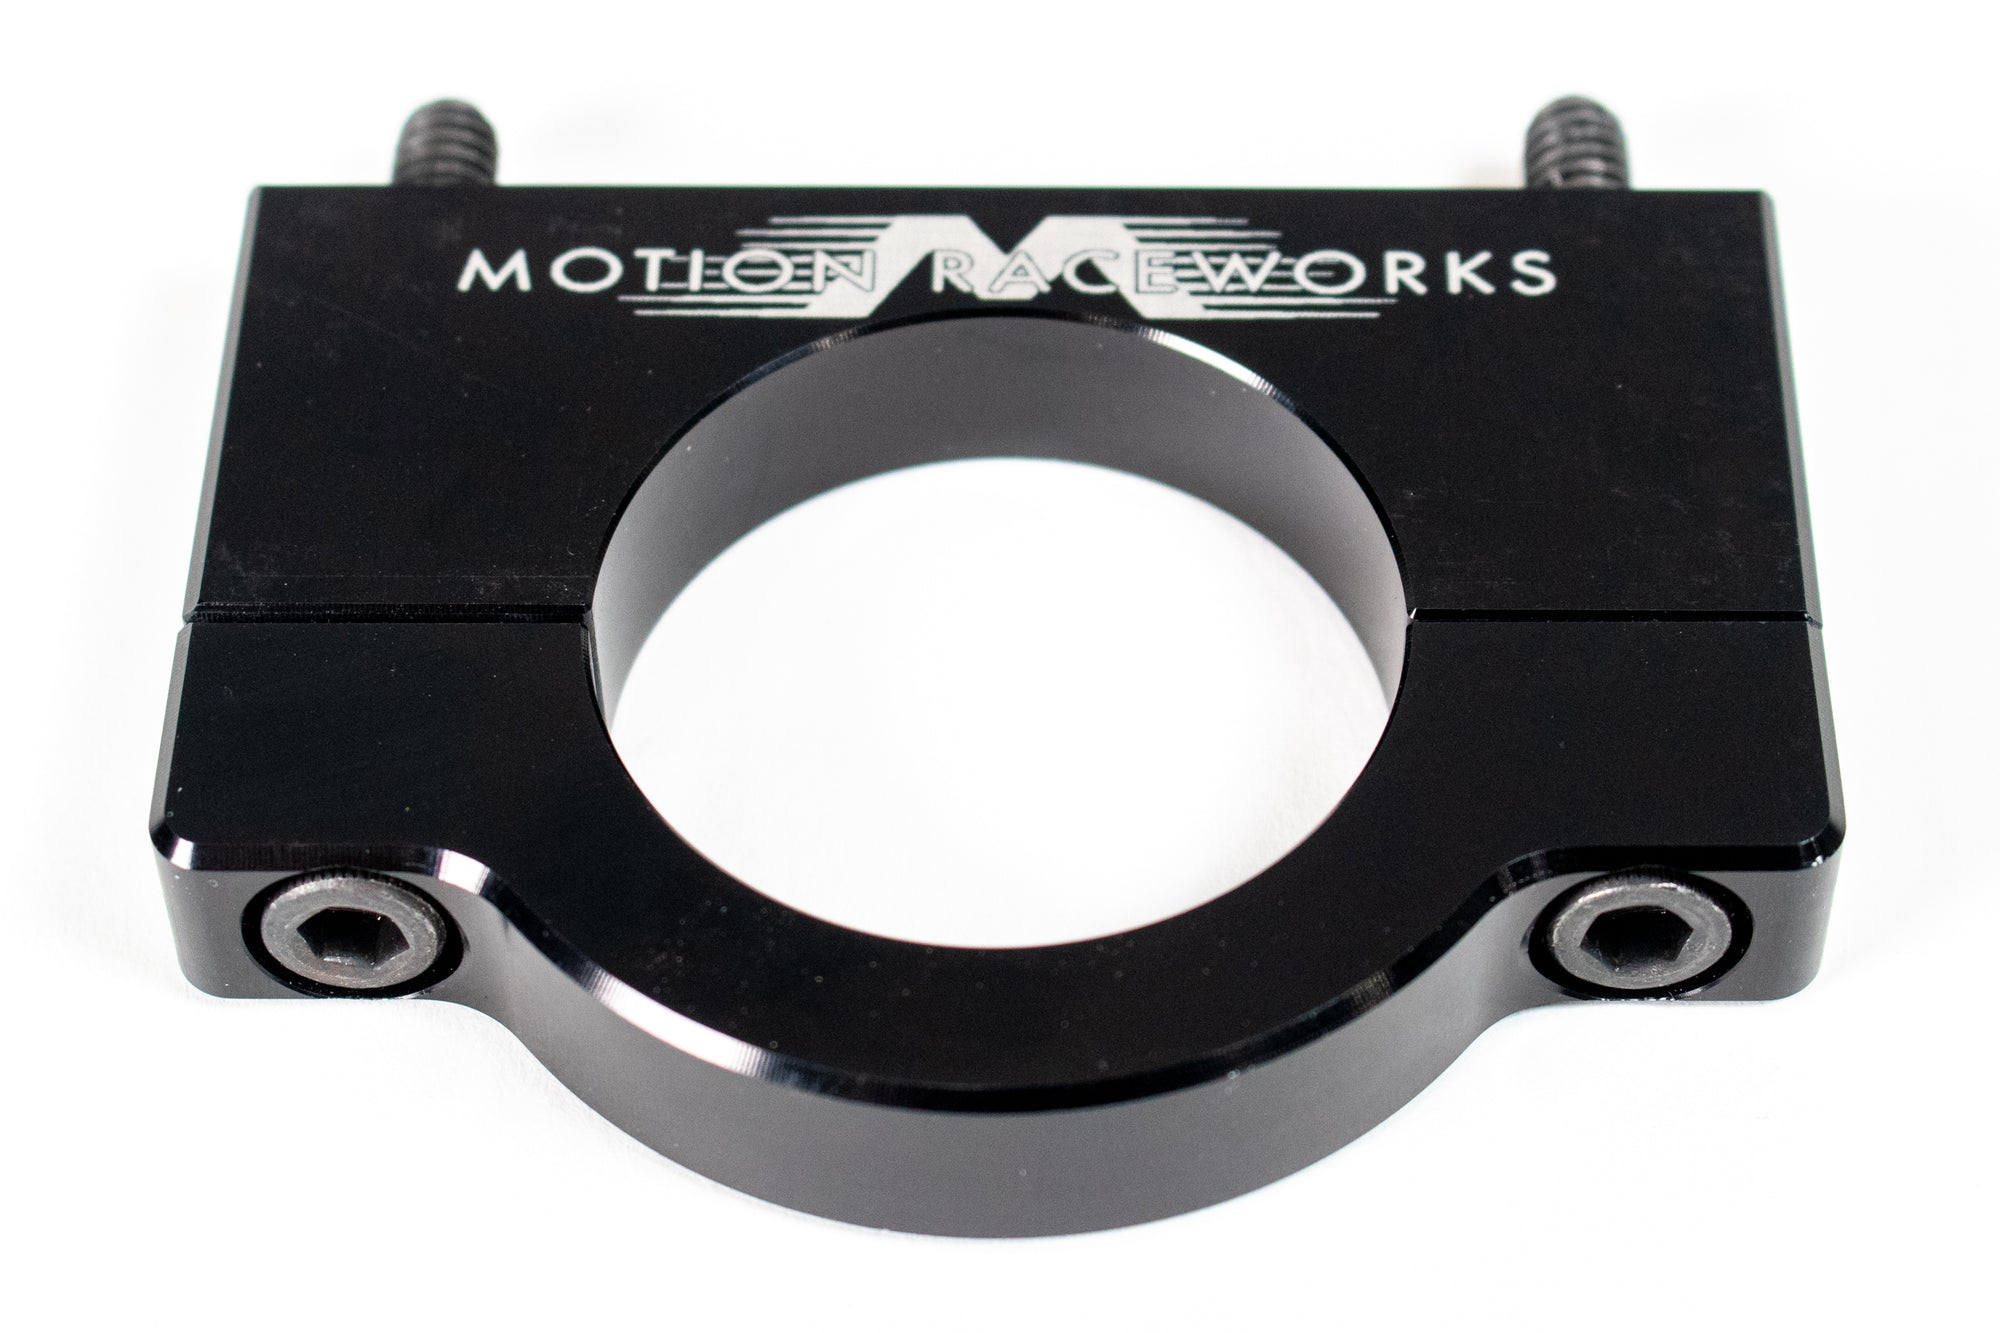 Motion Raceworks 1 1/4 Roll bar mount 1812001-Motion Raceworks-Motion Raceworks